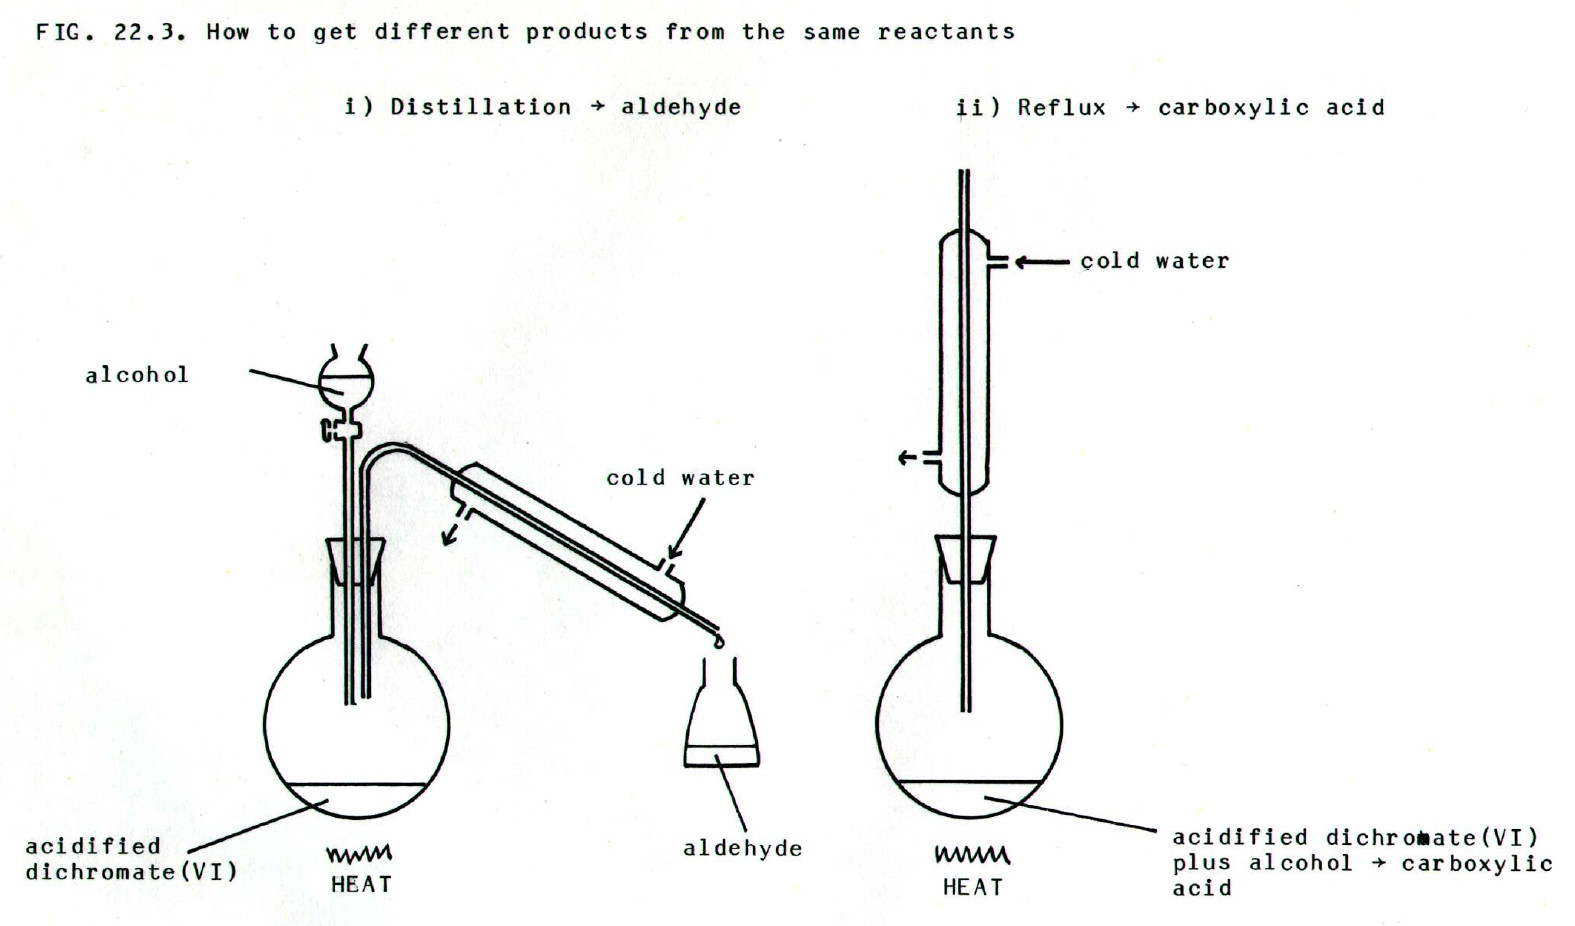 cannizzaro reaction procedure Cannizzaro reaction this redox disproportionation of non-enolizable aldehydes to carboxylic acids and alcohols is conducted in concentrated base α-keto aldehydes give the product of an intramolecular disproportionation in excellent yields mechanism of the cannizzaro reaction.